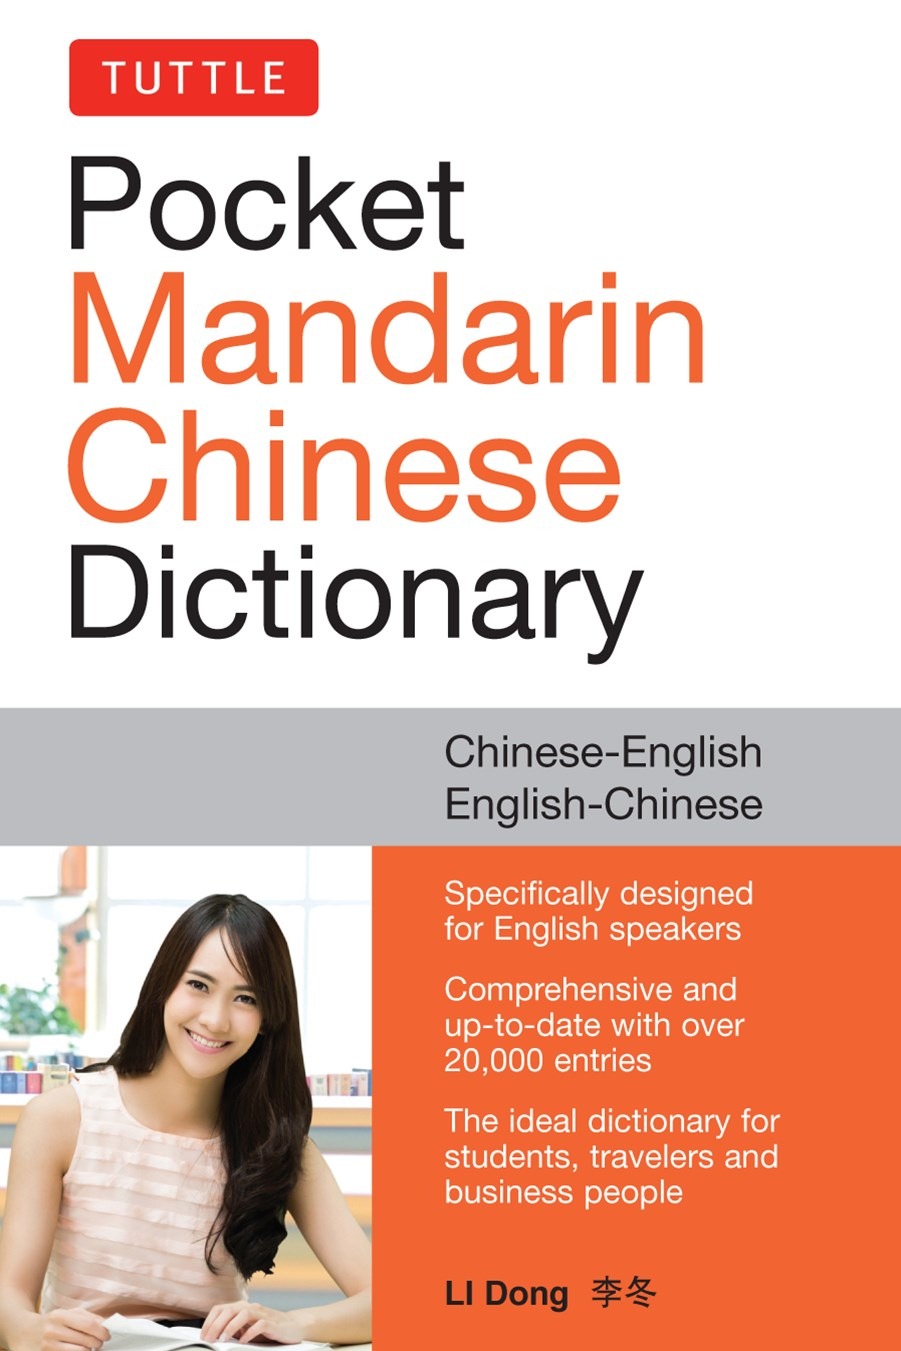 Pocket Mandarin Chinese Dictionary